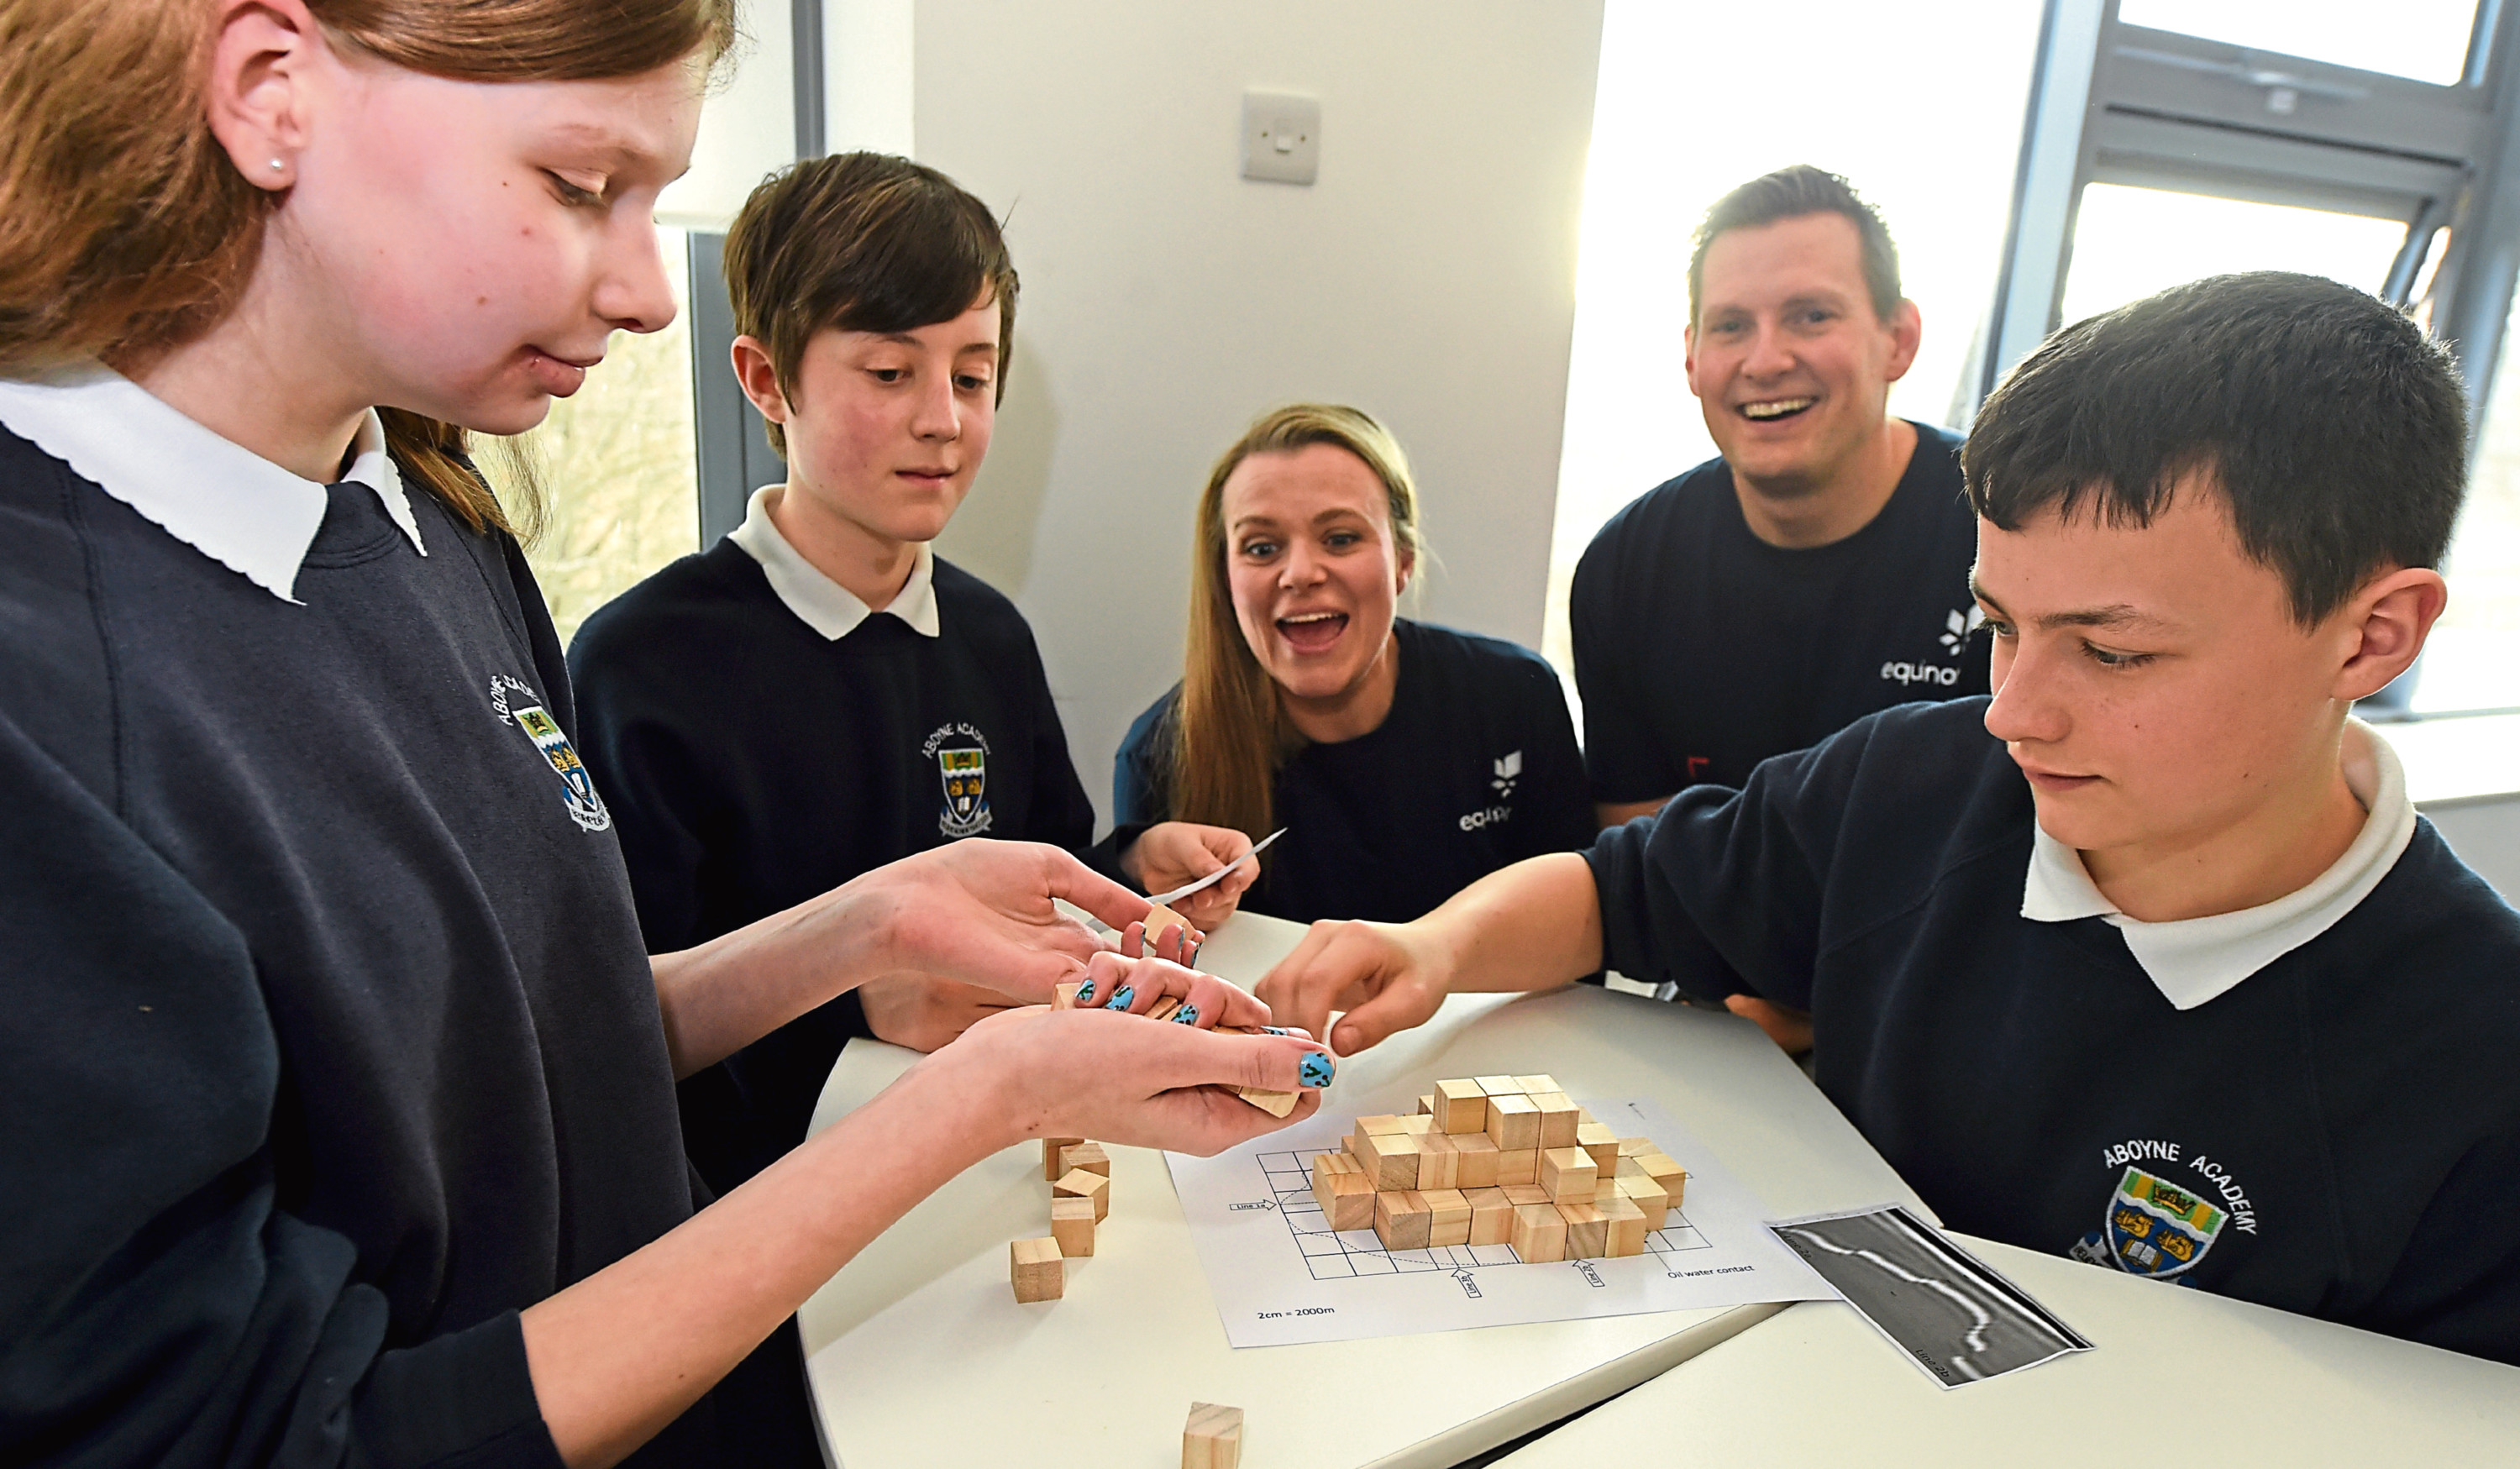 Sarah Chew, the managing director of Techfest and Arne Gurtner, Equinor senior vice president UK with pupils from Aboyne Academy